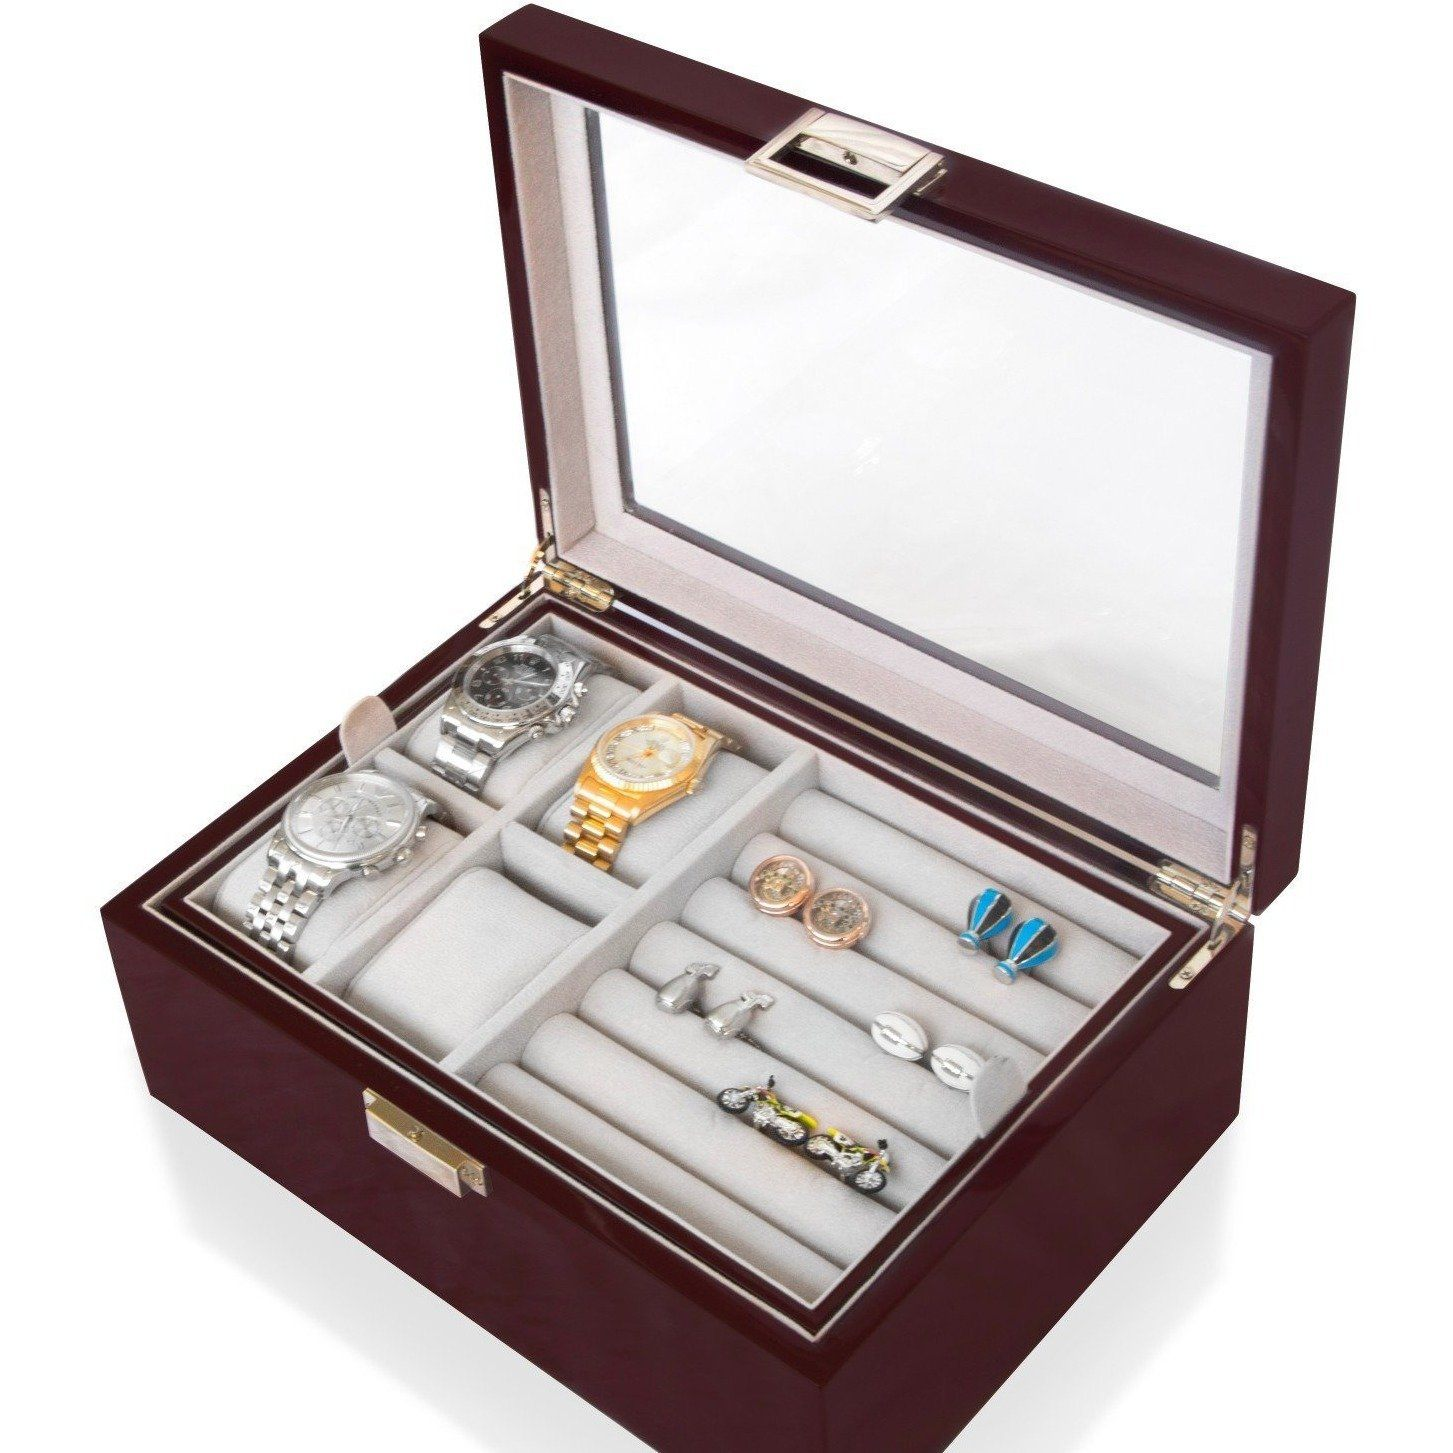 50 Pair Cufflink and Watch Box Double Decker Mahogany, Storage Boxes, Cuffed.com.au, CB3070, $169.00